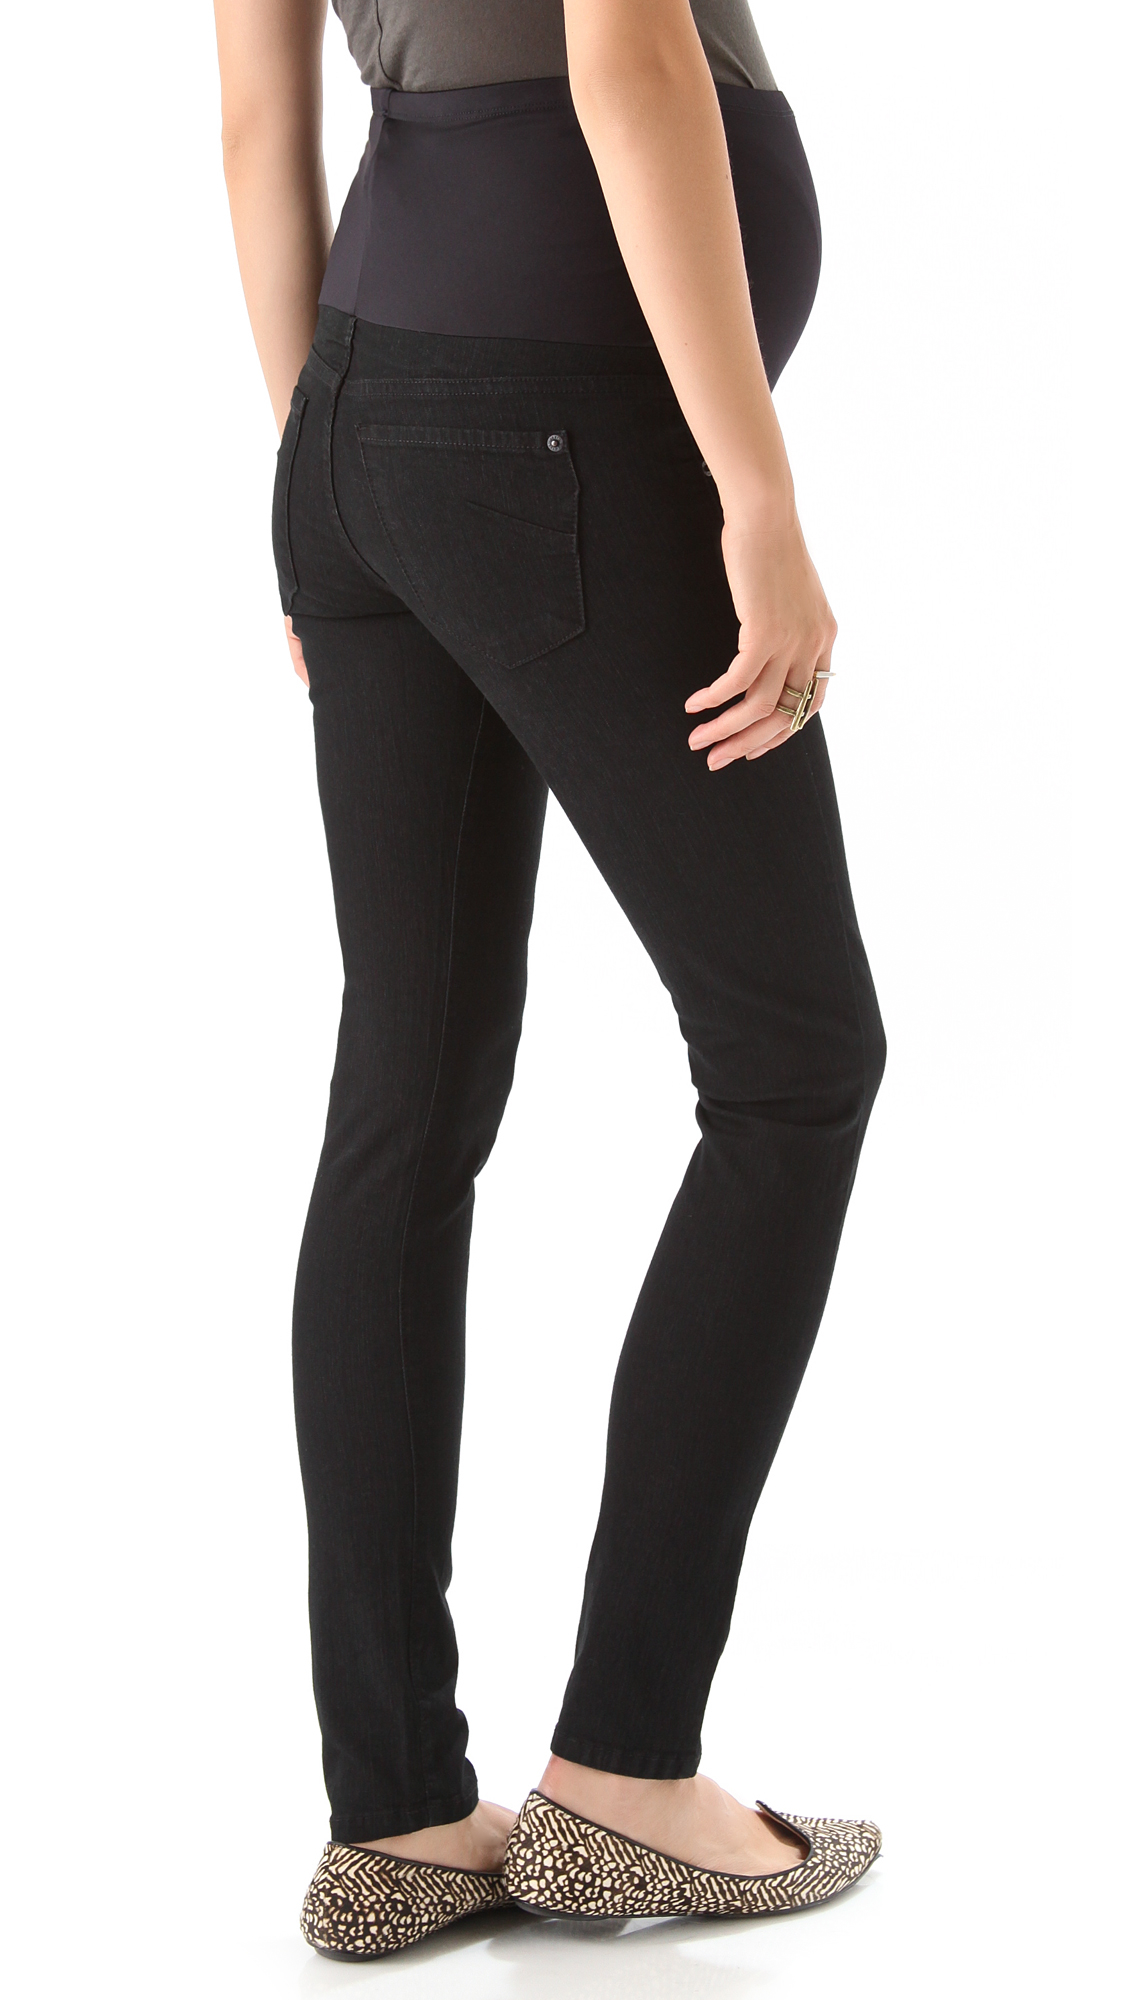 Enjoy free shipping and easy returns every day at Kohl's. Find great deals on Womens Maternity Pants at Kohl's today!